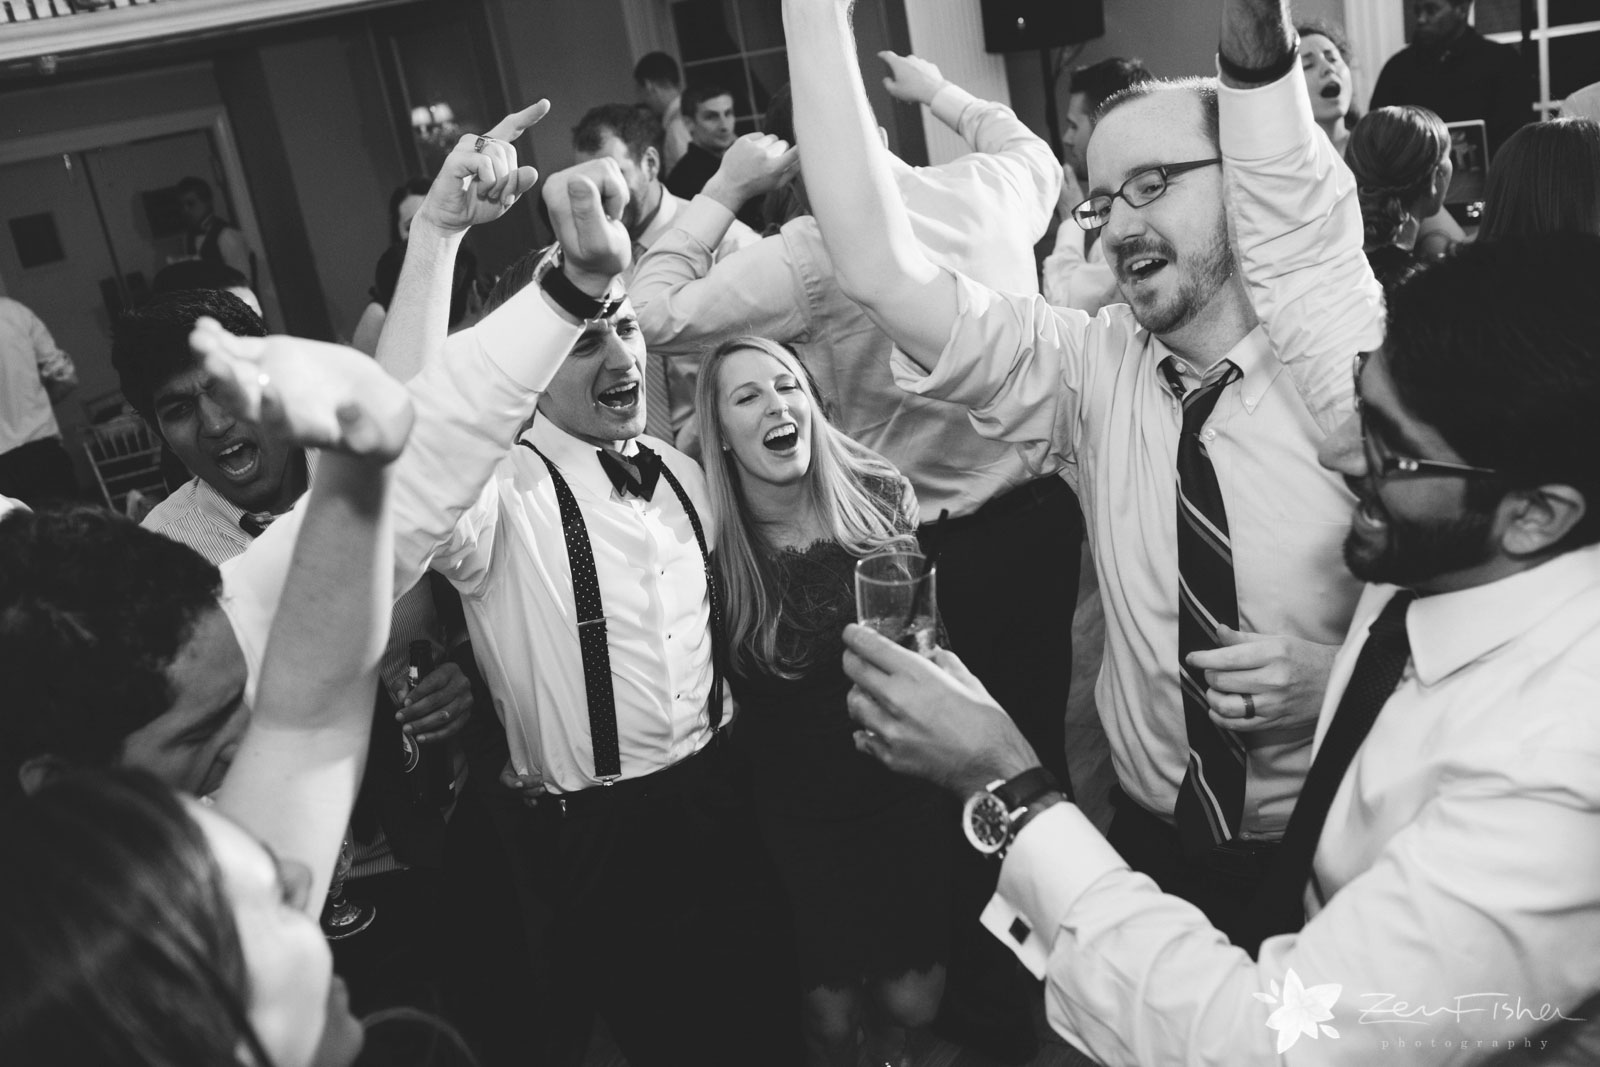 Guests shout and throw their hands up on the dance floor.